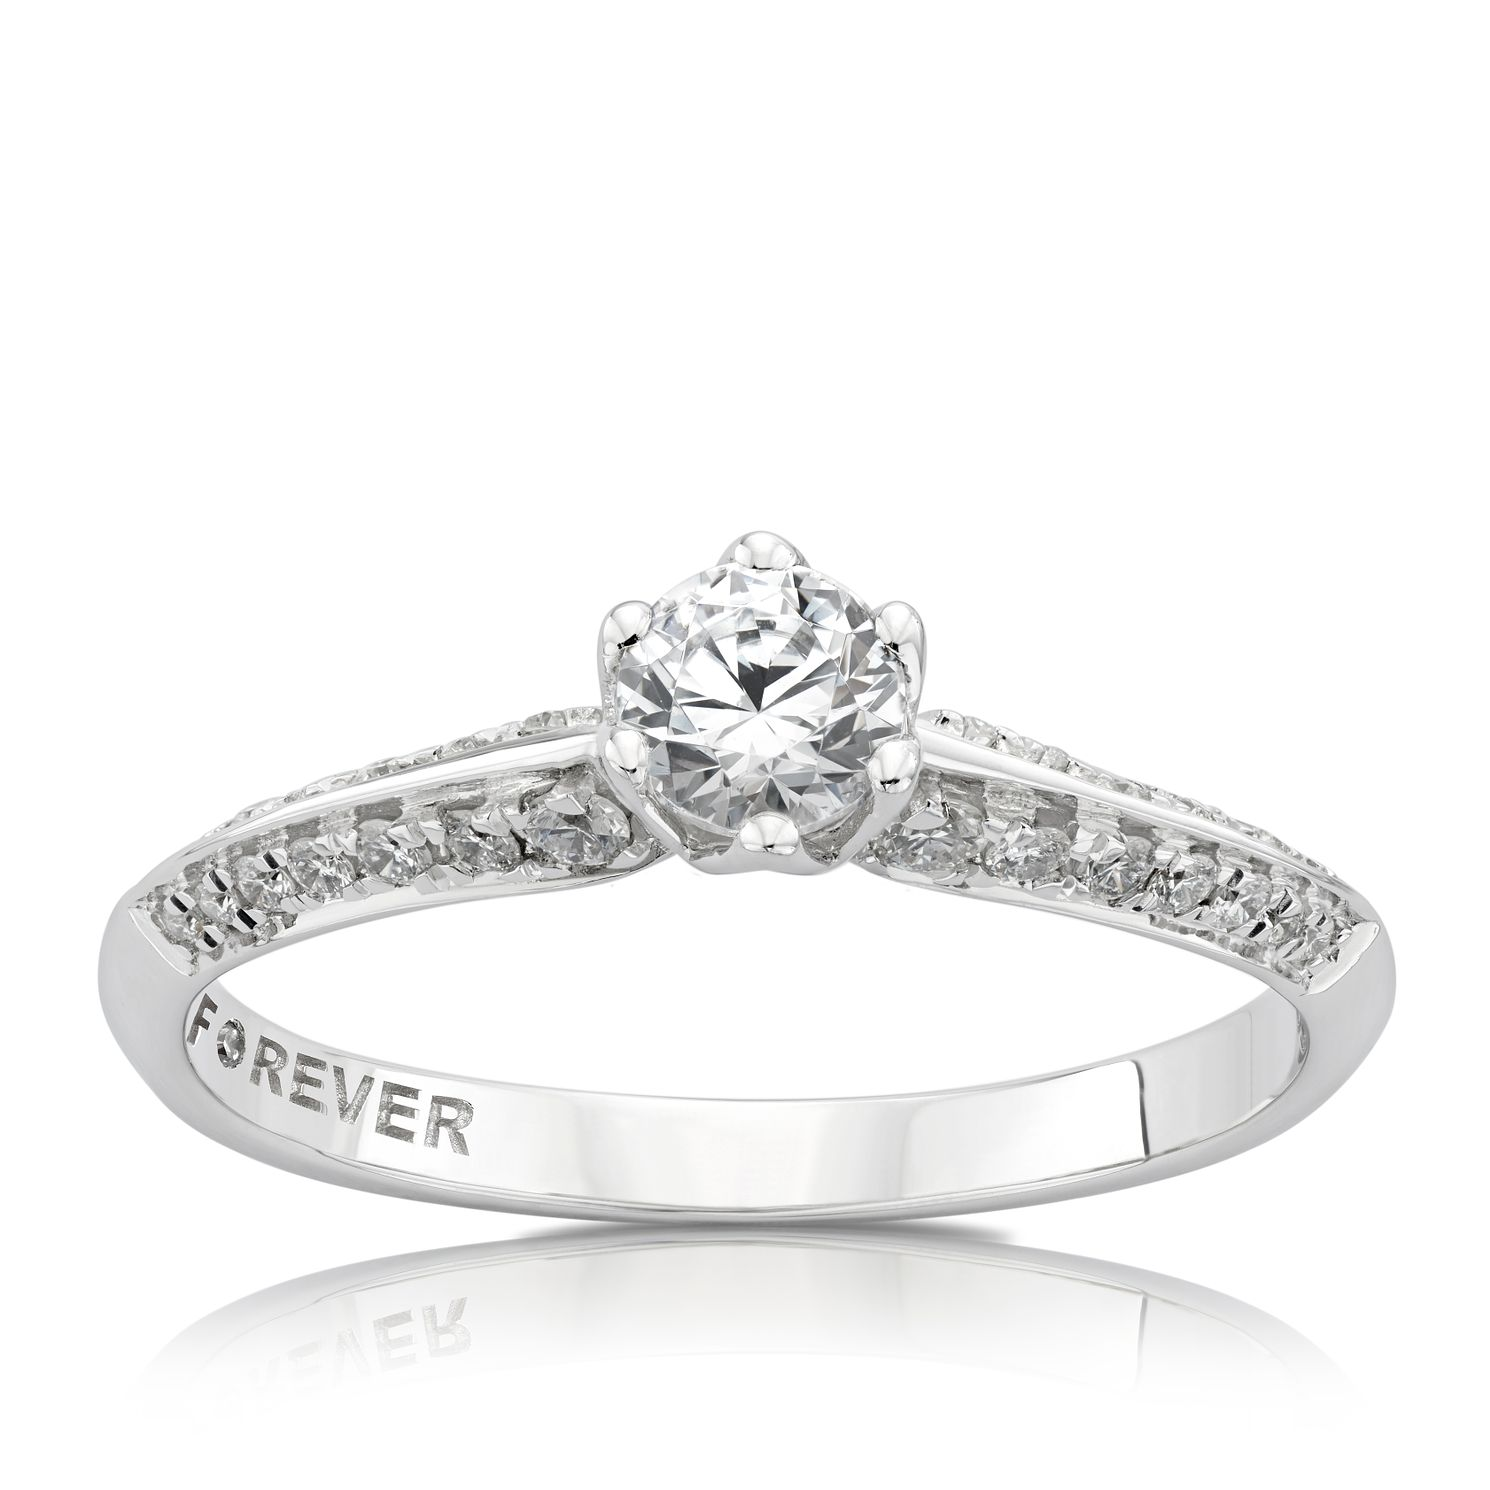 18ct White Gold 1/2ct Forever Diamond Double Row Ring - Product number 3801578